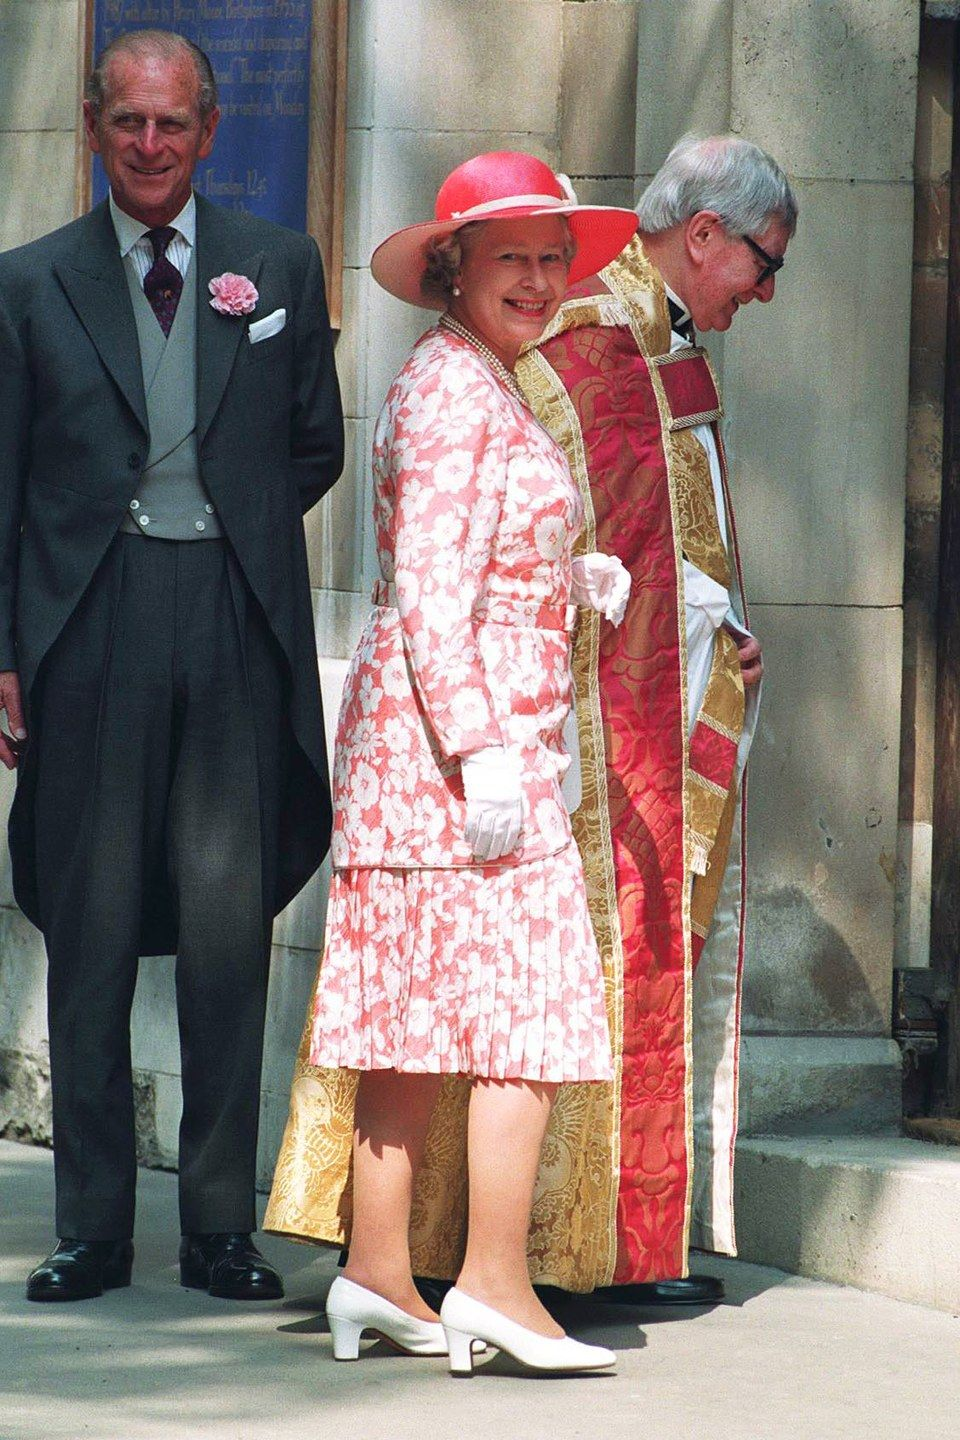 21 Times Queen Elizabeth Wore Exactly The Right Thing To A Wedding Queen Elizabeth Ii Wedding Queen Elizabeth Her Majesty The Queen [ 1440 x 960 Pixel ]